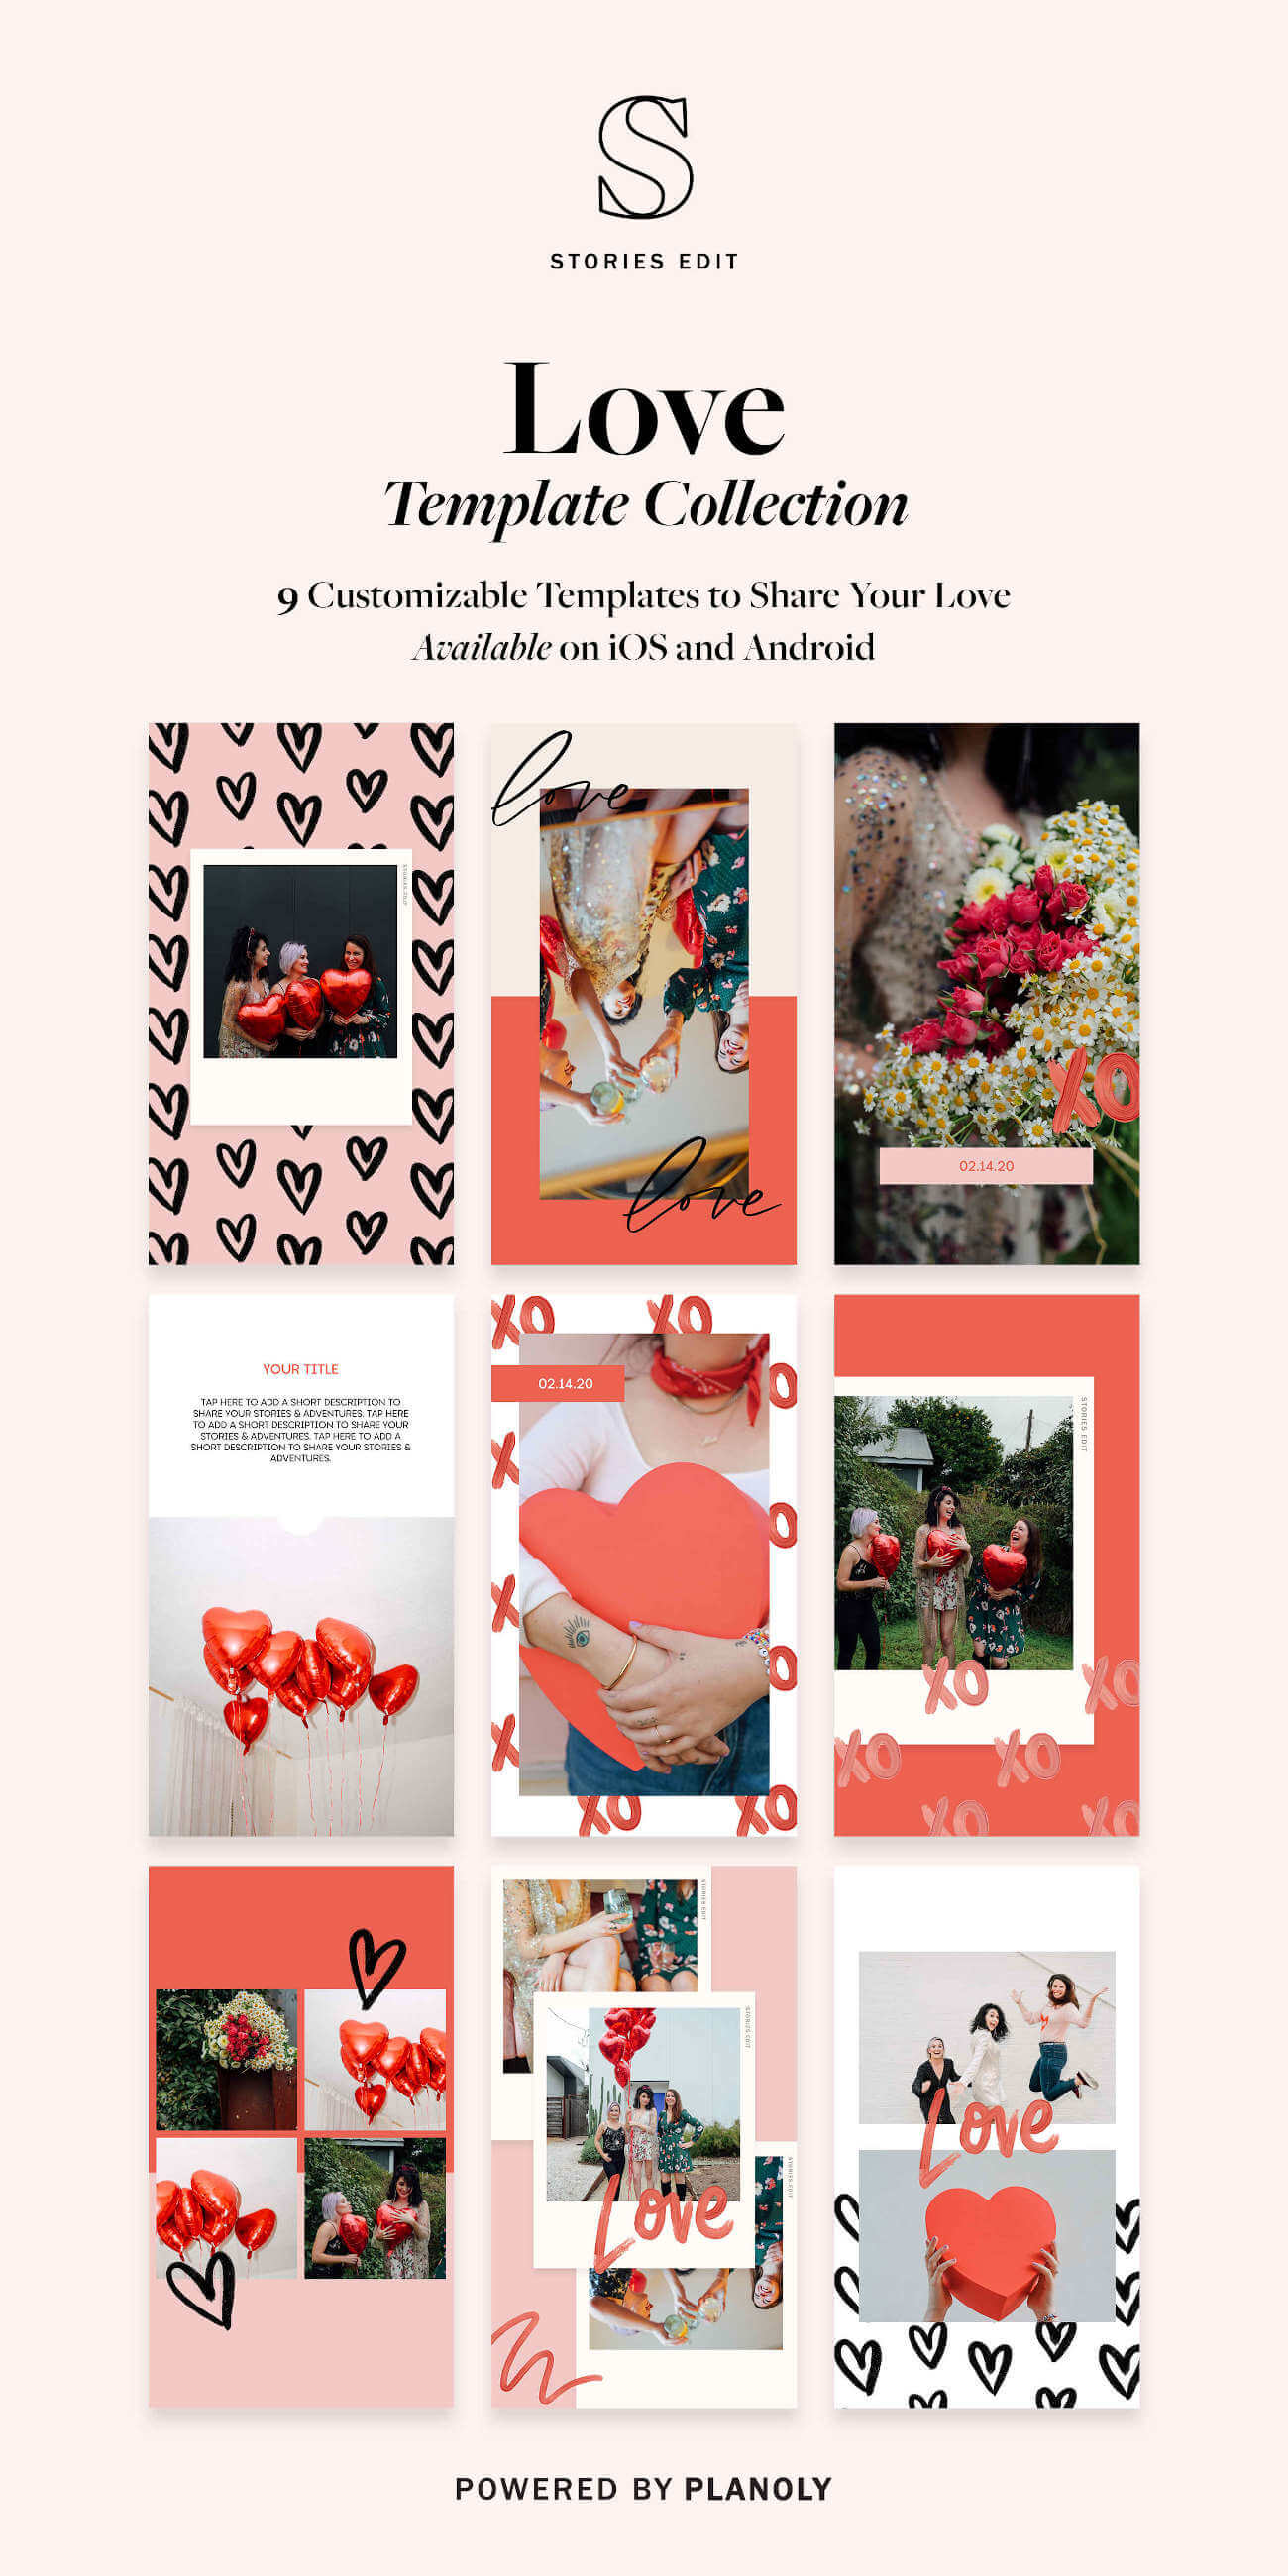 StoriesEdit Love Collection: 5 Creative Ways to Use Our New Template